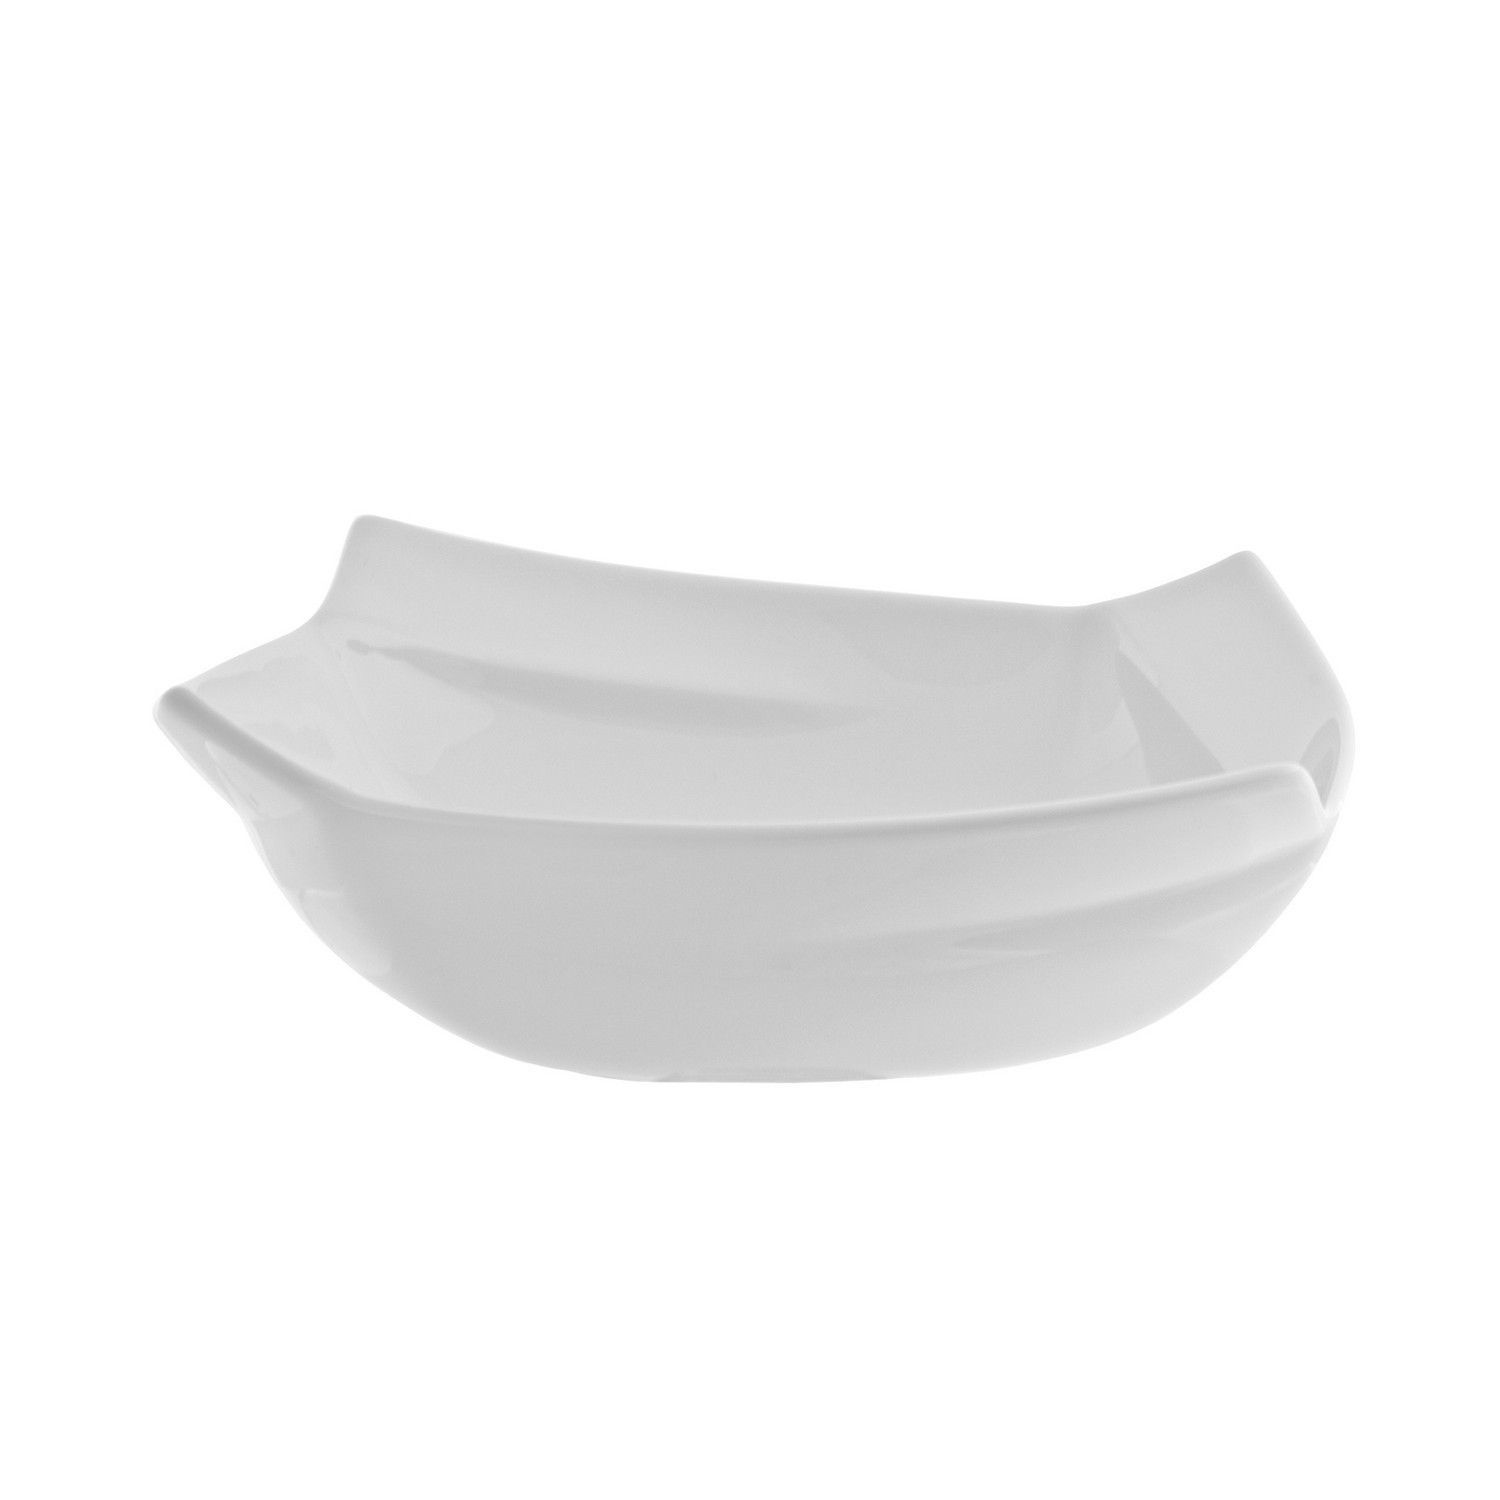 8 Oz. 6L x 2H Nouve Square Cereal Bowl/Case Of 12